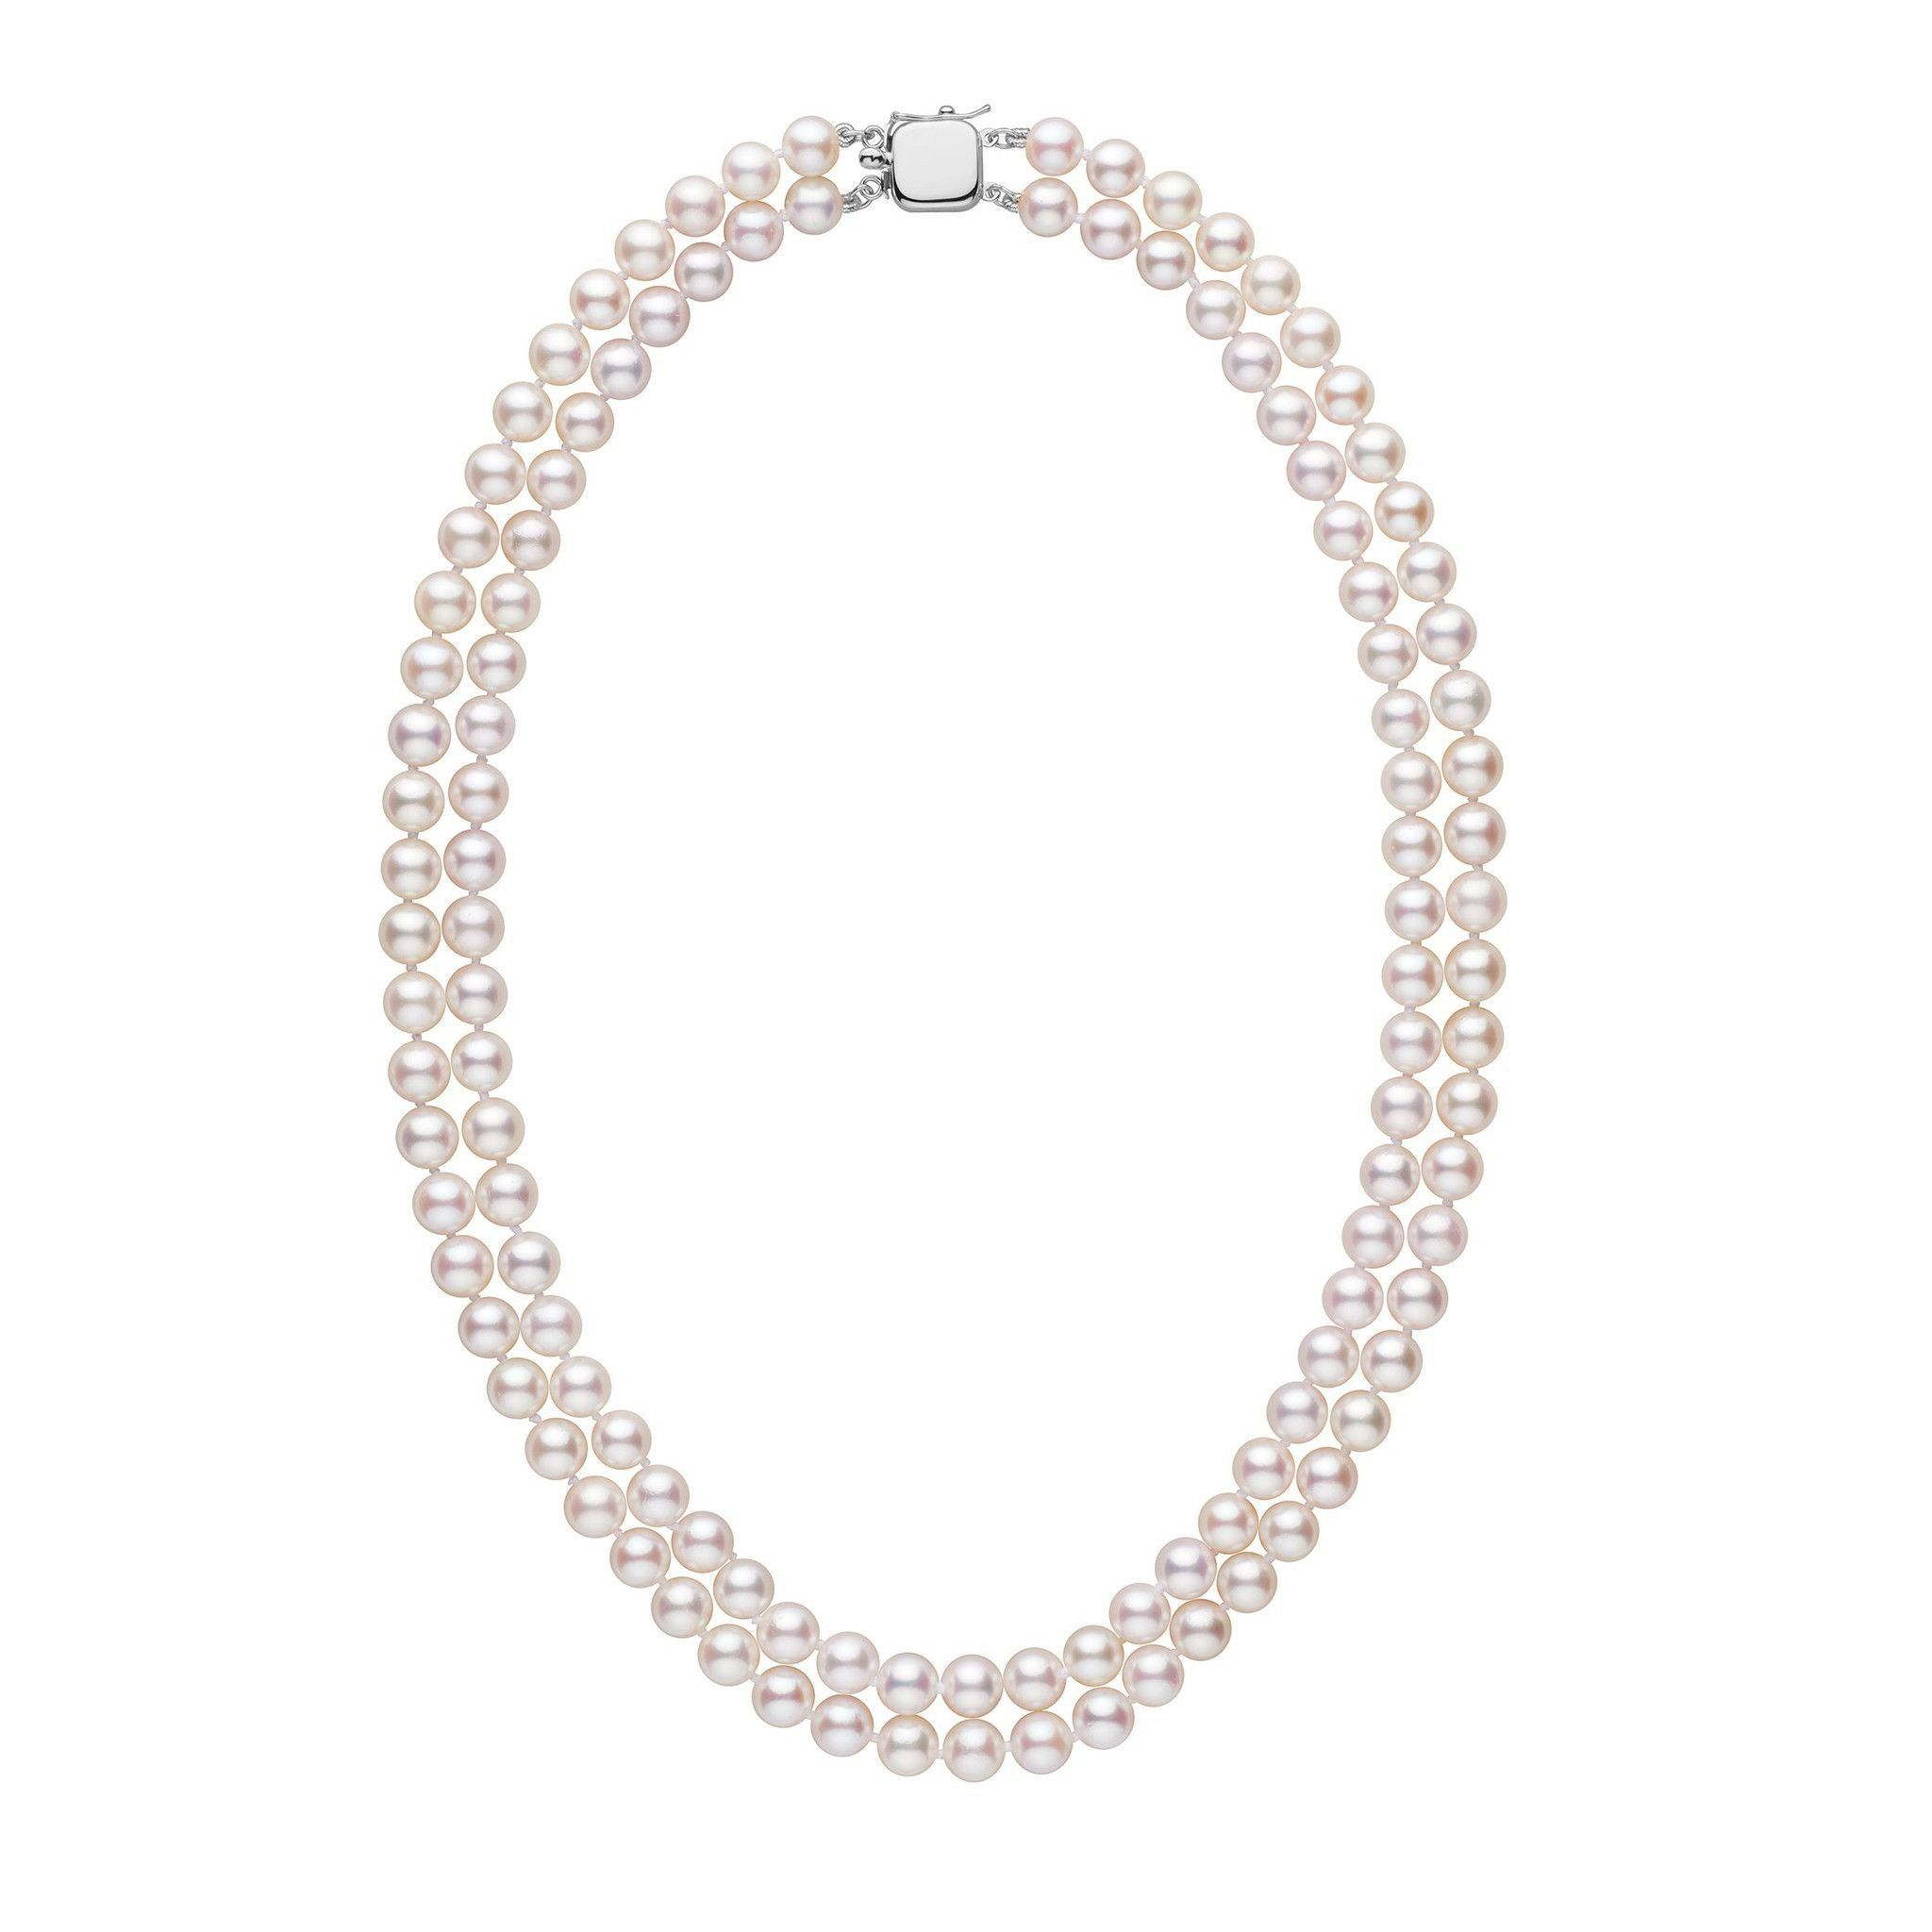 6.5-7.0 mm 18-inch Double-Strand White Akoya AA+ Pearl Necklace